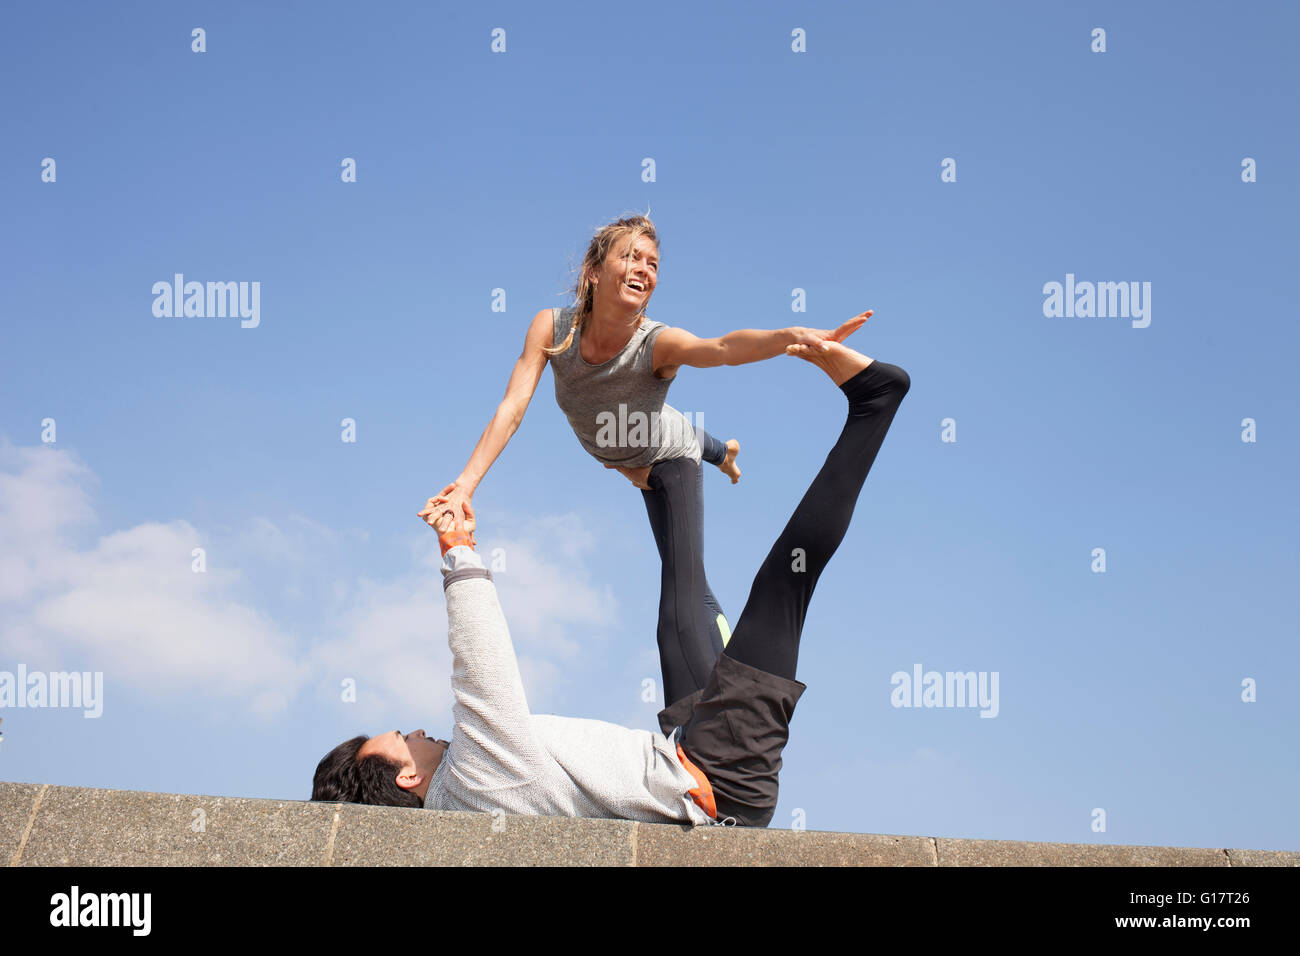 Man and woman on wall practicing acrobatic yoga Stock Photo